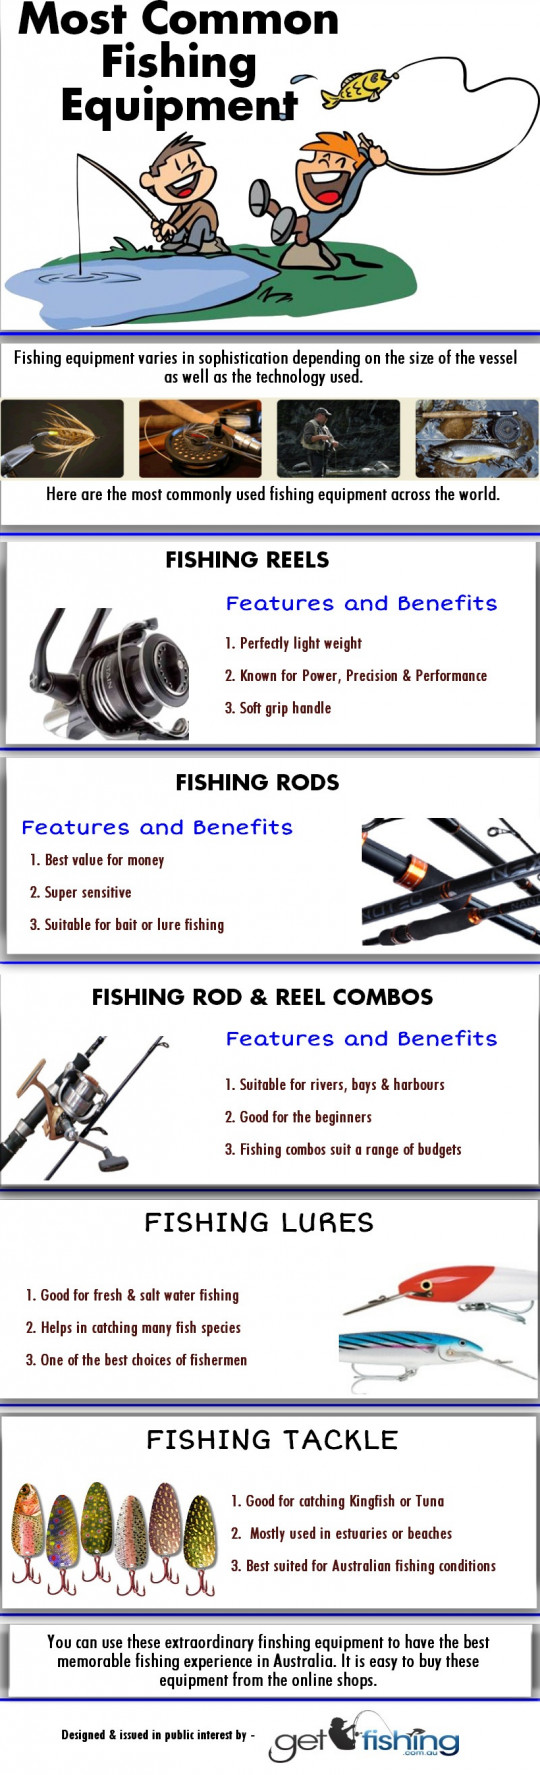 Most Common Fishing Equipment